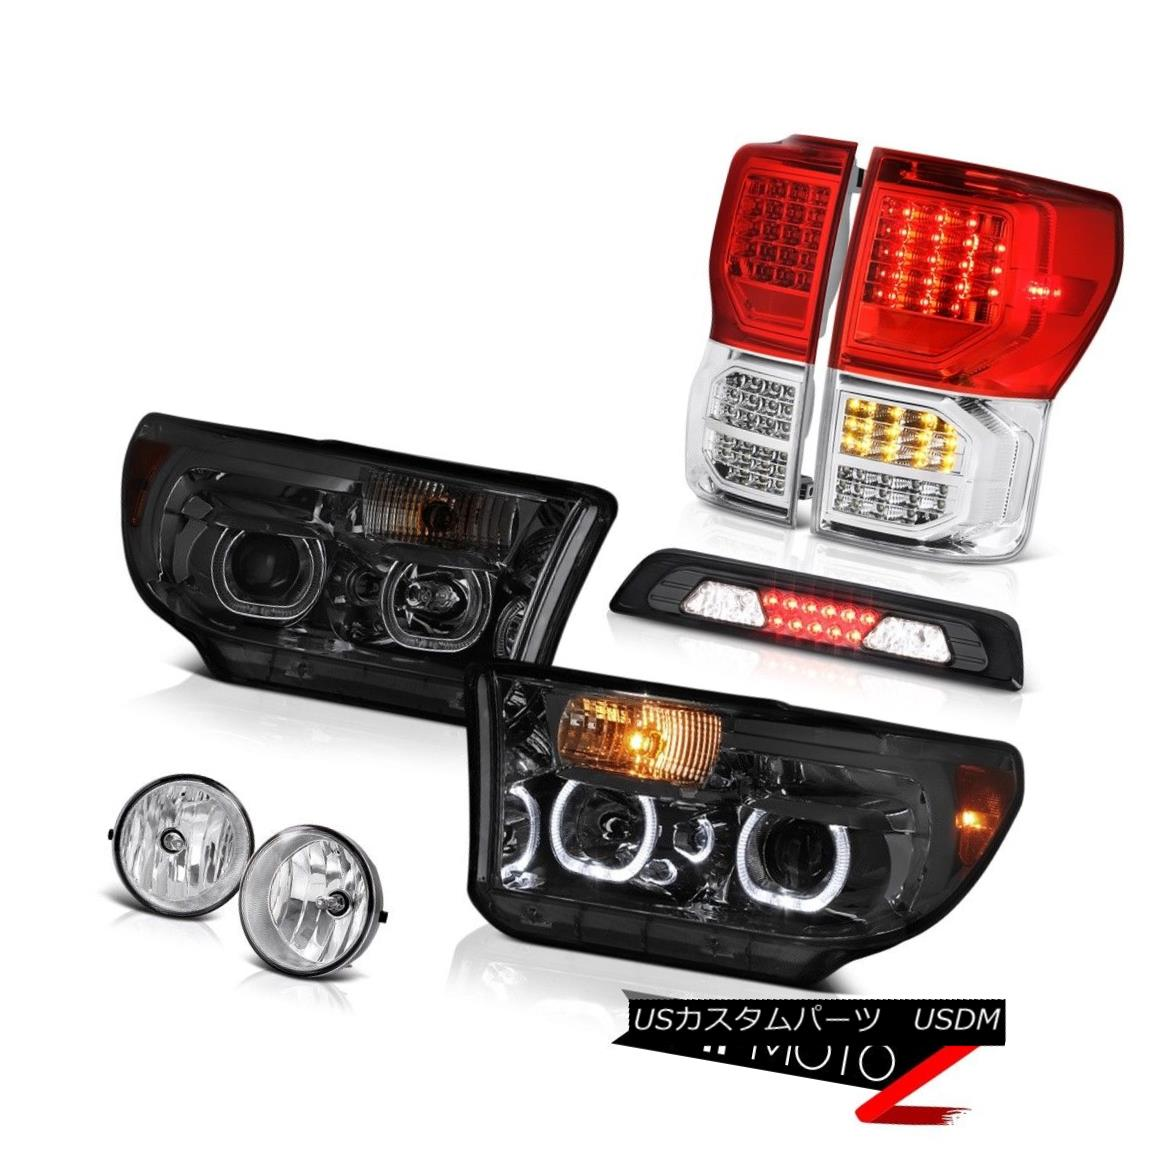 ヘッドライト 07-13 Toyota Tundra SR5 Tail Lights Headlights High Stop Lamp Foglamps Halo Rim 07-13 Toyota Tundra SR5テールライトヘッドライトハイストップランプフォグランプHalo Rim